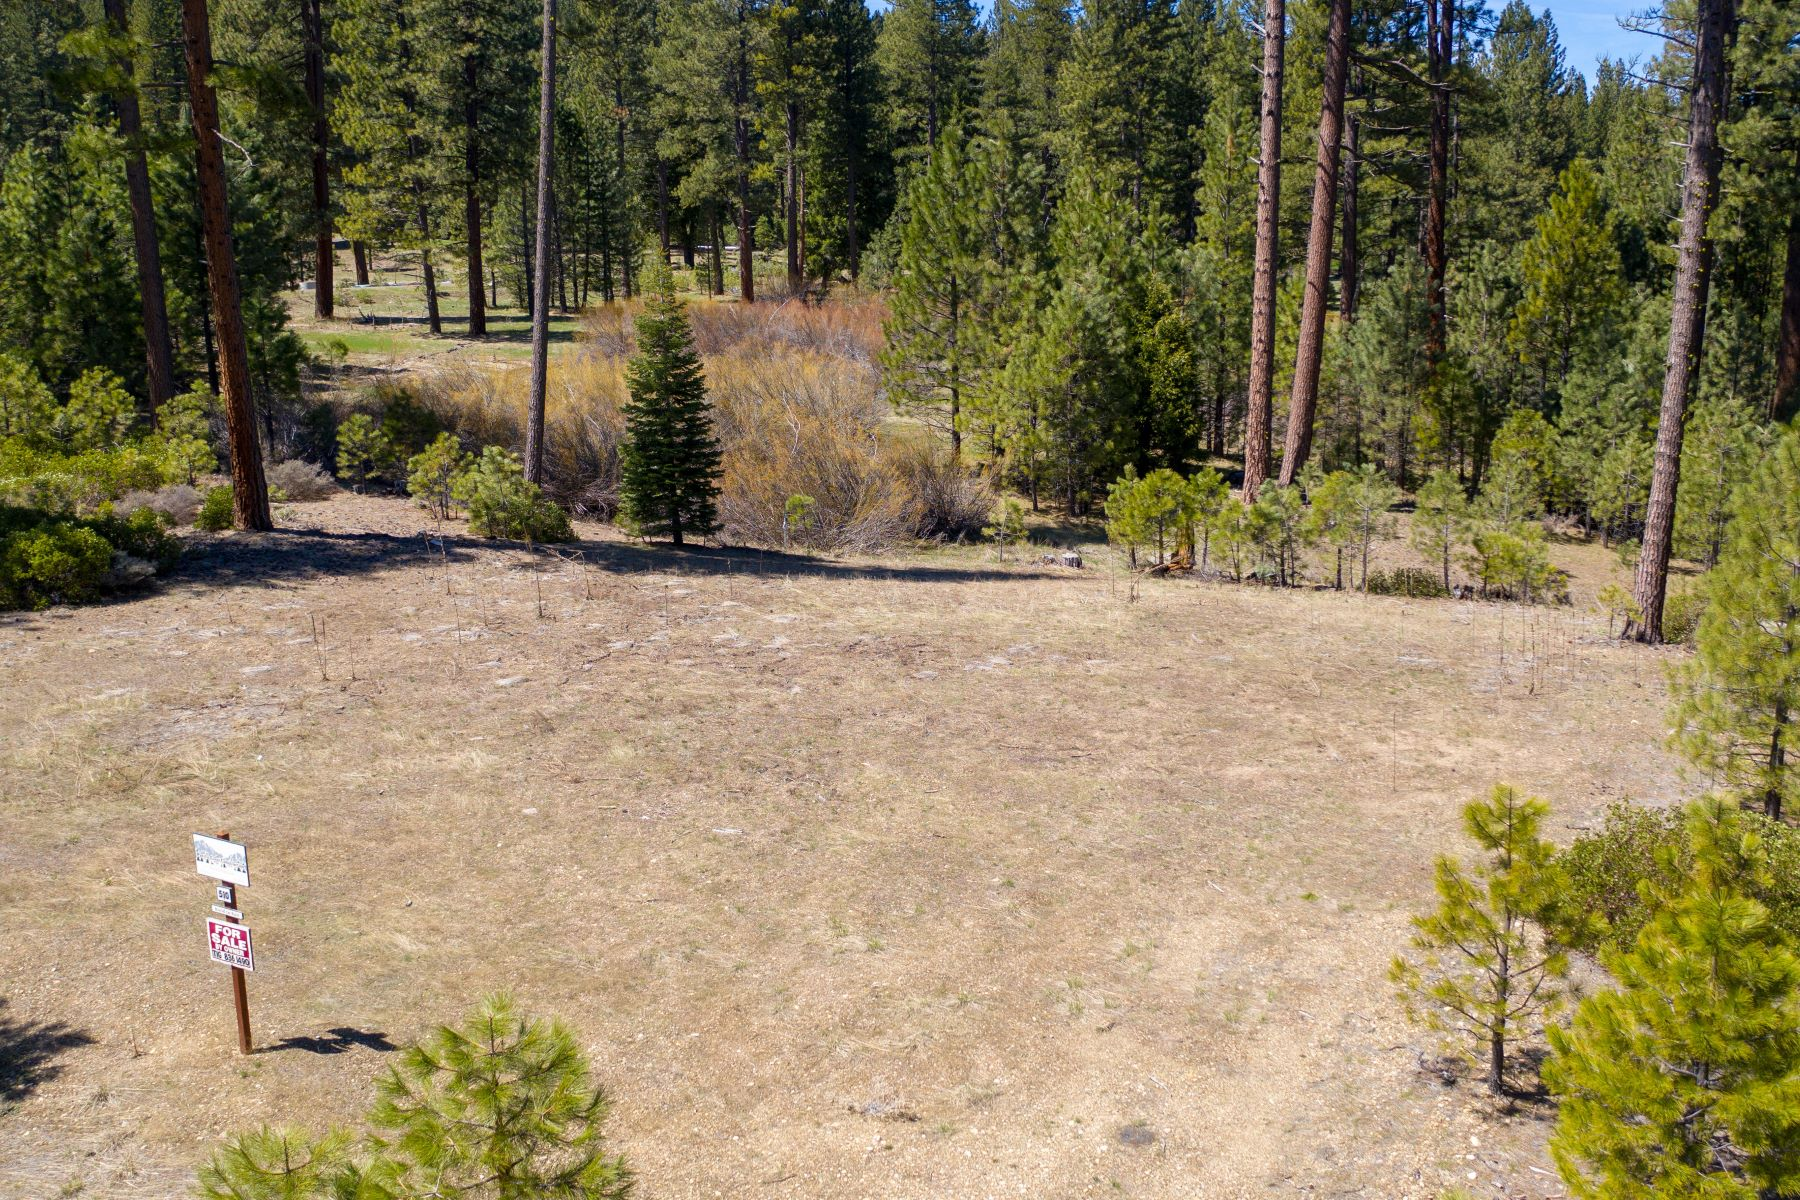 Additional photo for property listing at 510 Eureka Springs Drive, Blairsden, CA 96103 510 Eureka Springs Drive Blairsden, California 96103 United States